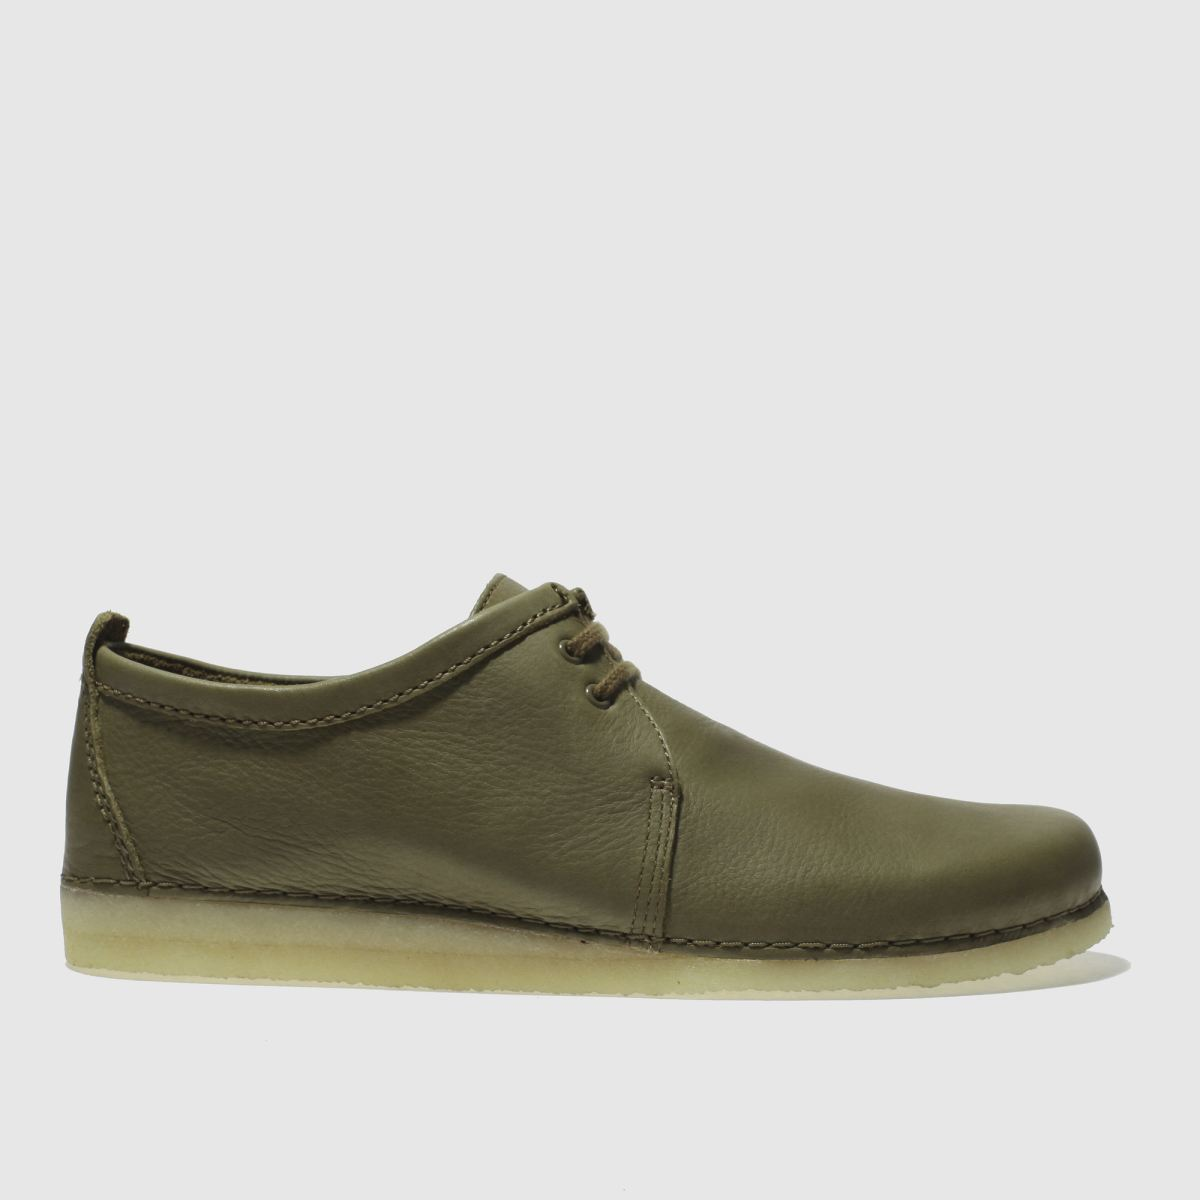 Clarks Originals Khaki Ashton Shoes